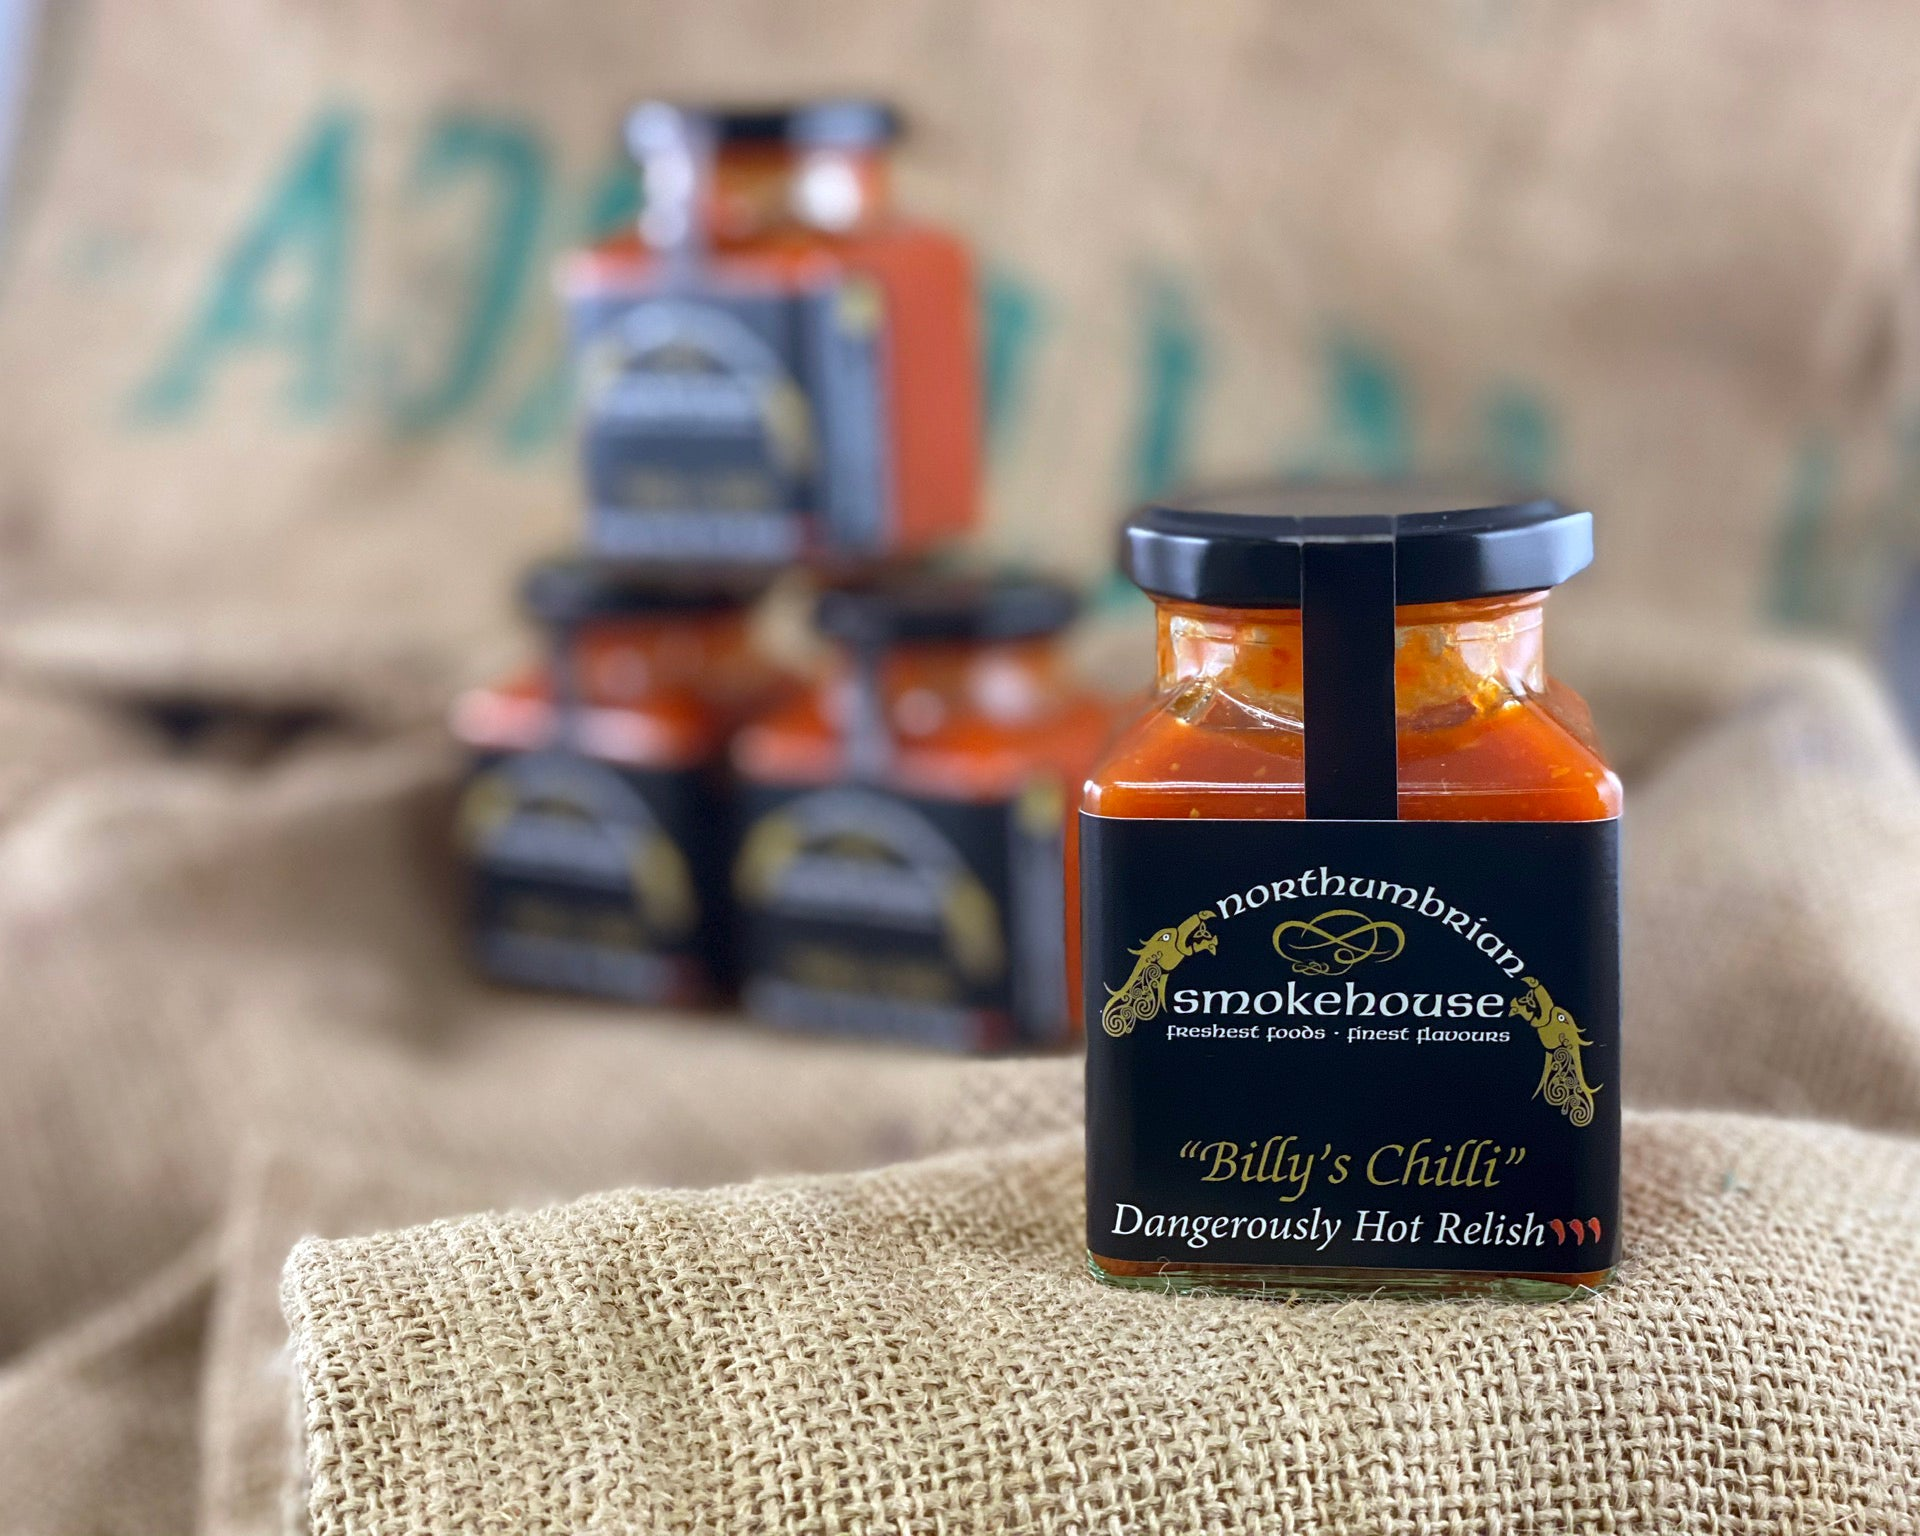 'Northern Delicious' : Northumbrian Smokehouse  ' Billy's Chilli Dangerously Hot Relish'